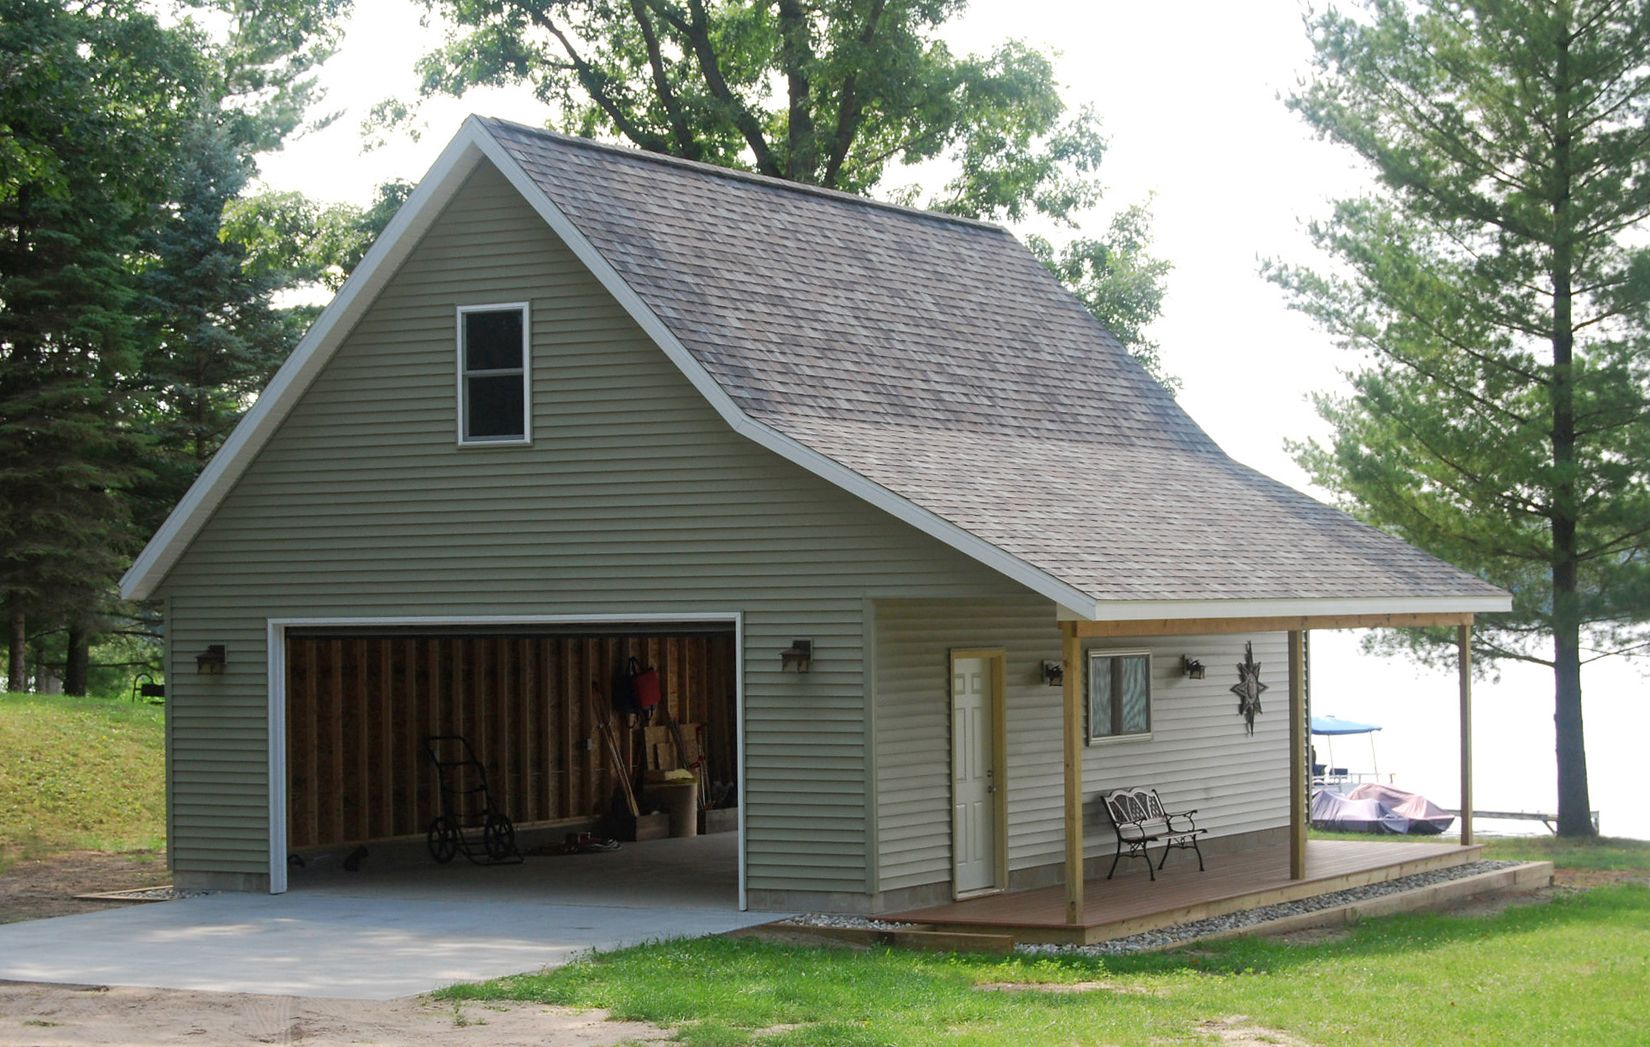 Pole barn garage plans welcome to jb custom homes where for Pole barn home plans with garage